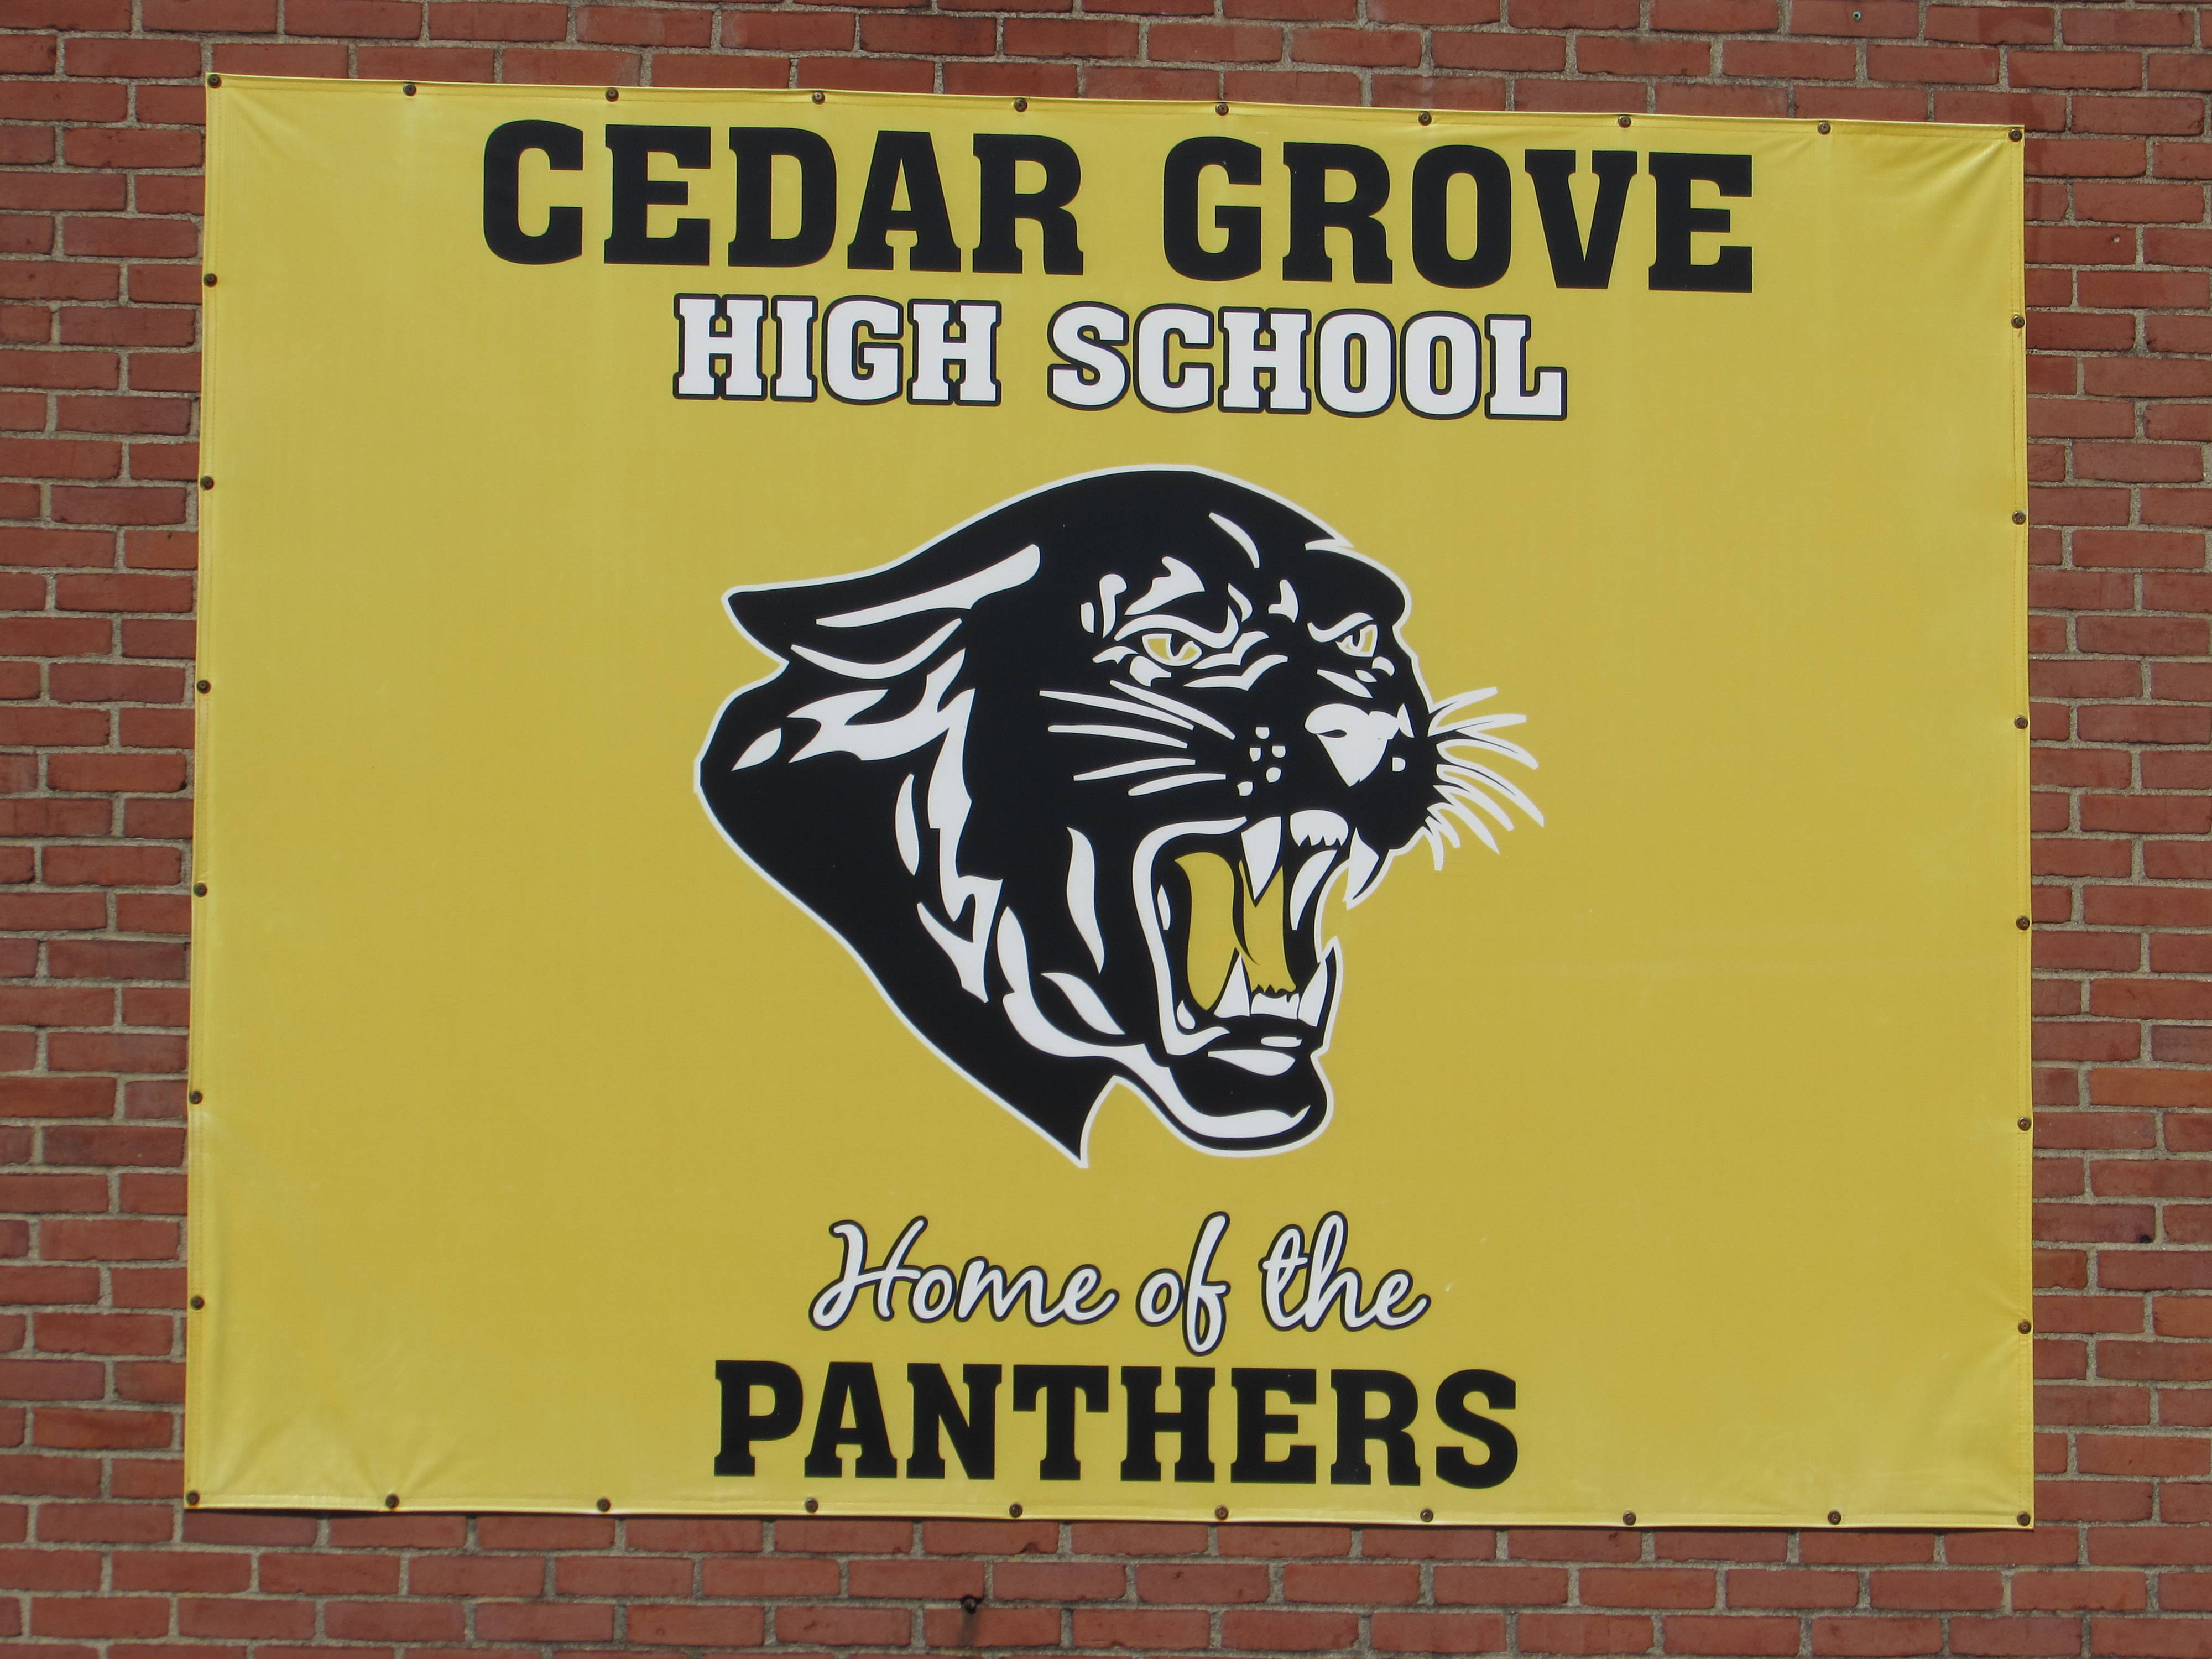 97666013b51ae72227ea_CGHS_panther_sign.JPG